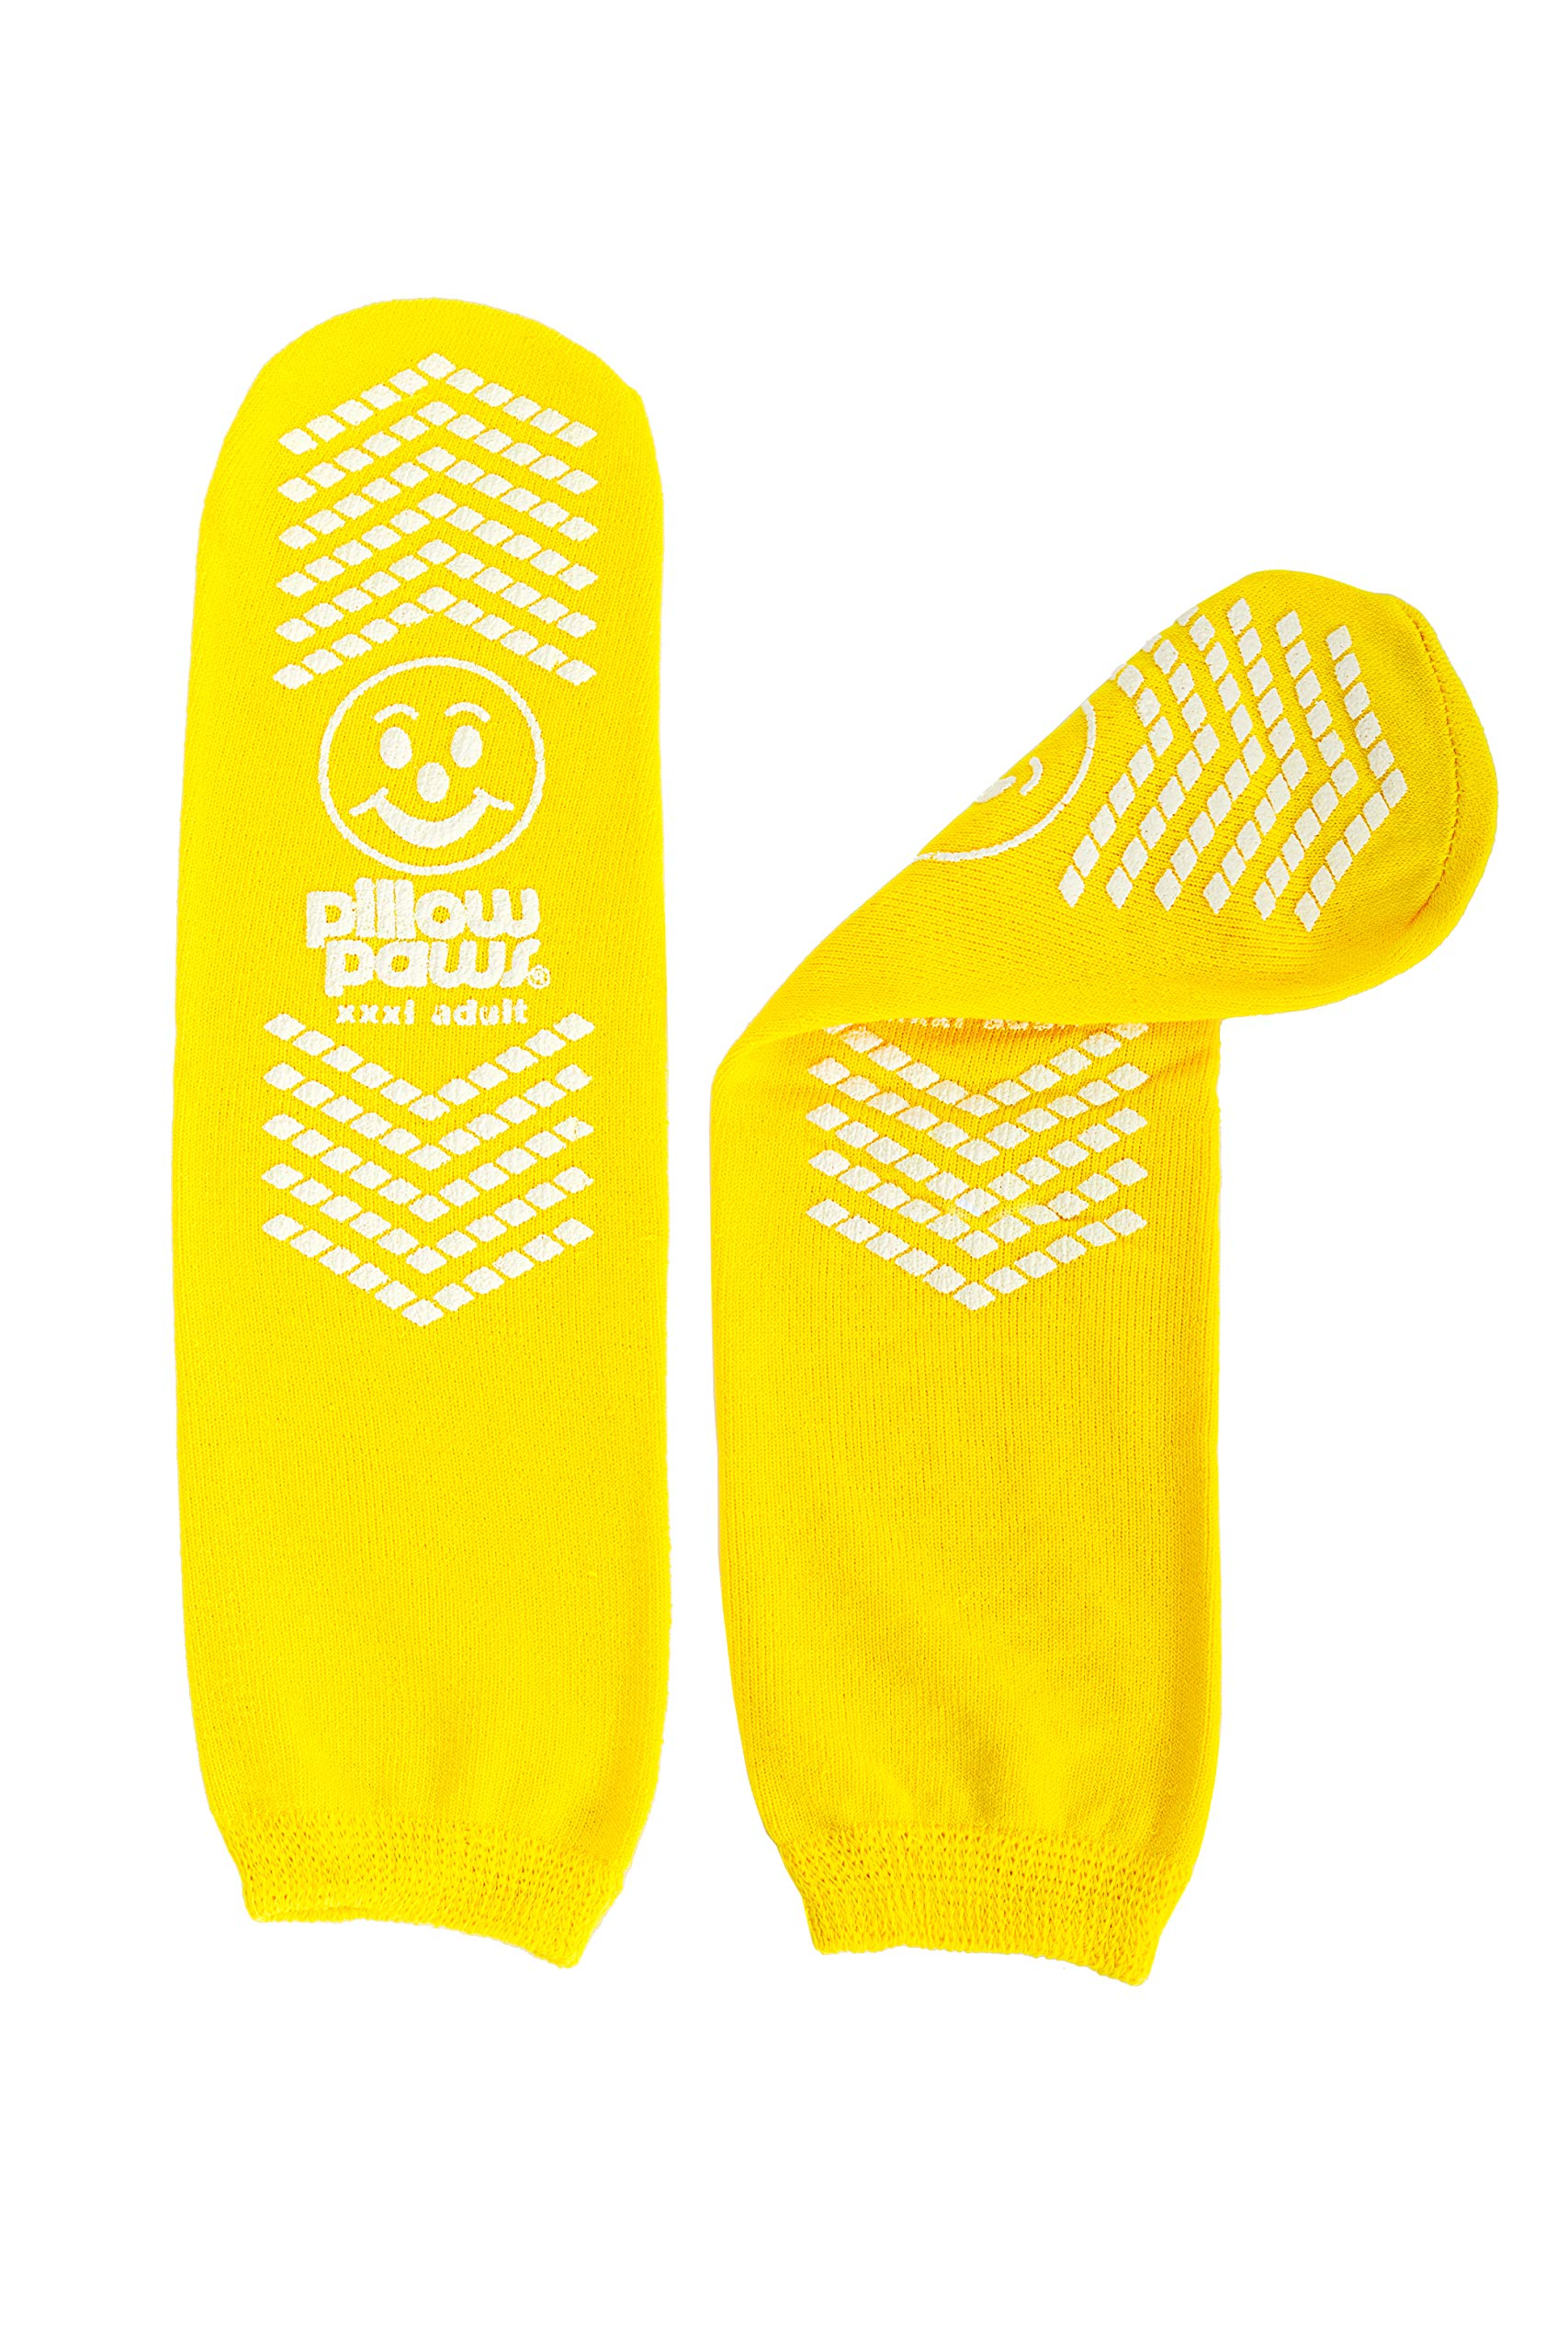 XXXL Slip Stopping Terrycloth Socks (Double Tread) (Extra Wide Bariatric) (Yellow) (3 Pairs) by Pillow Paws